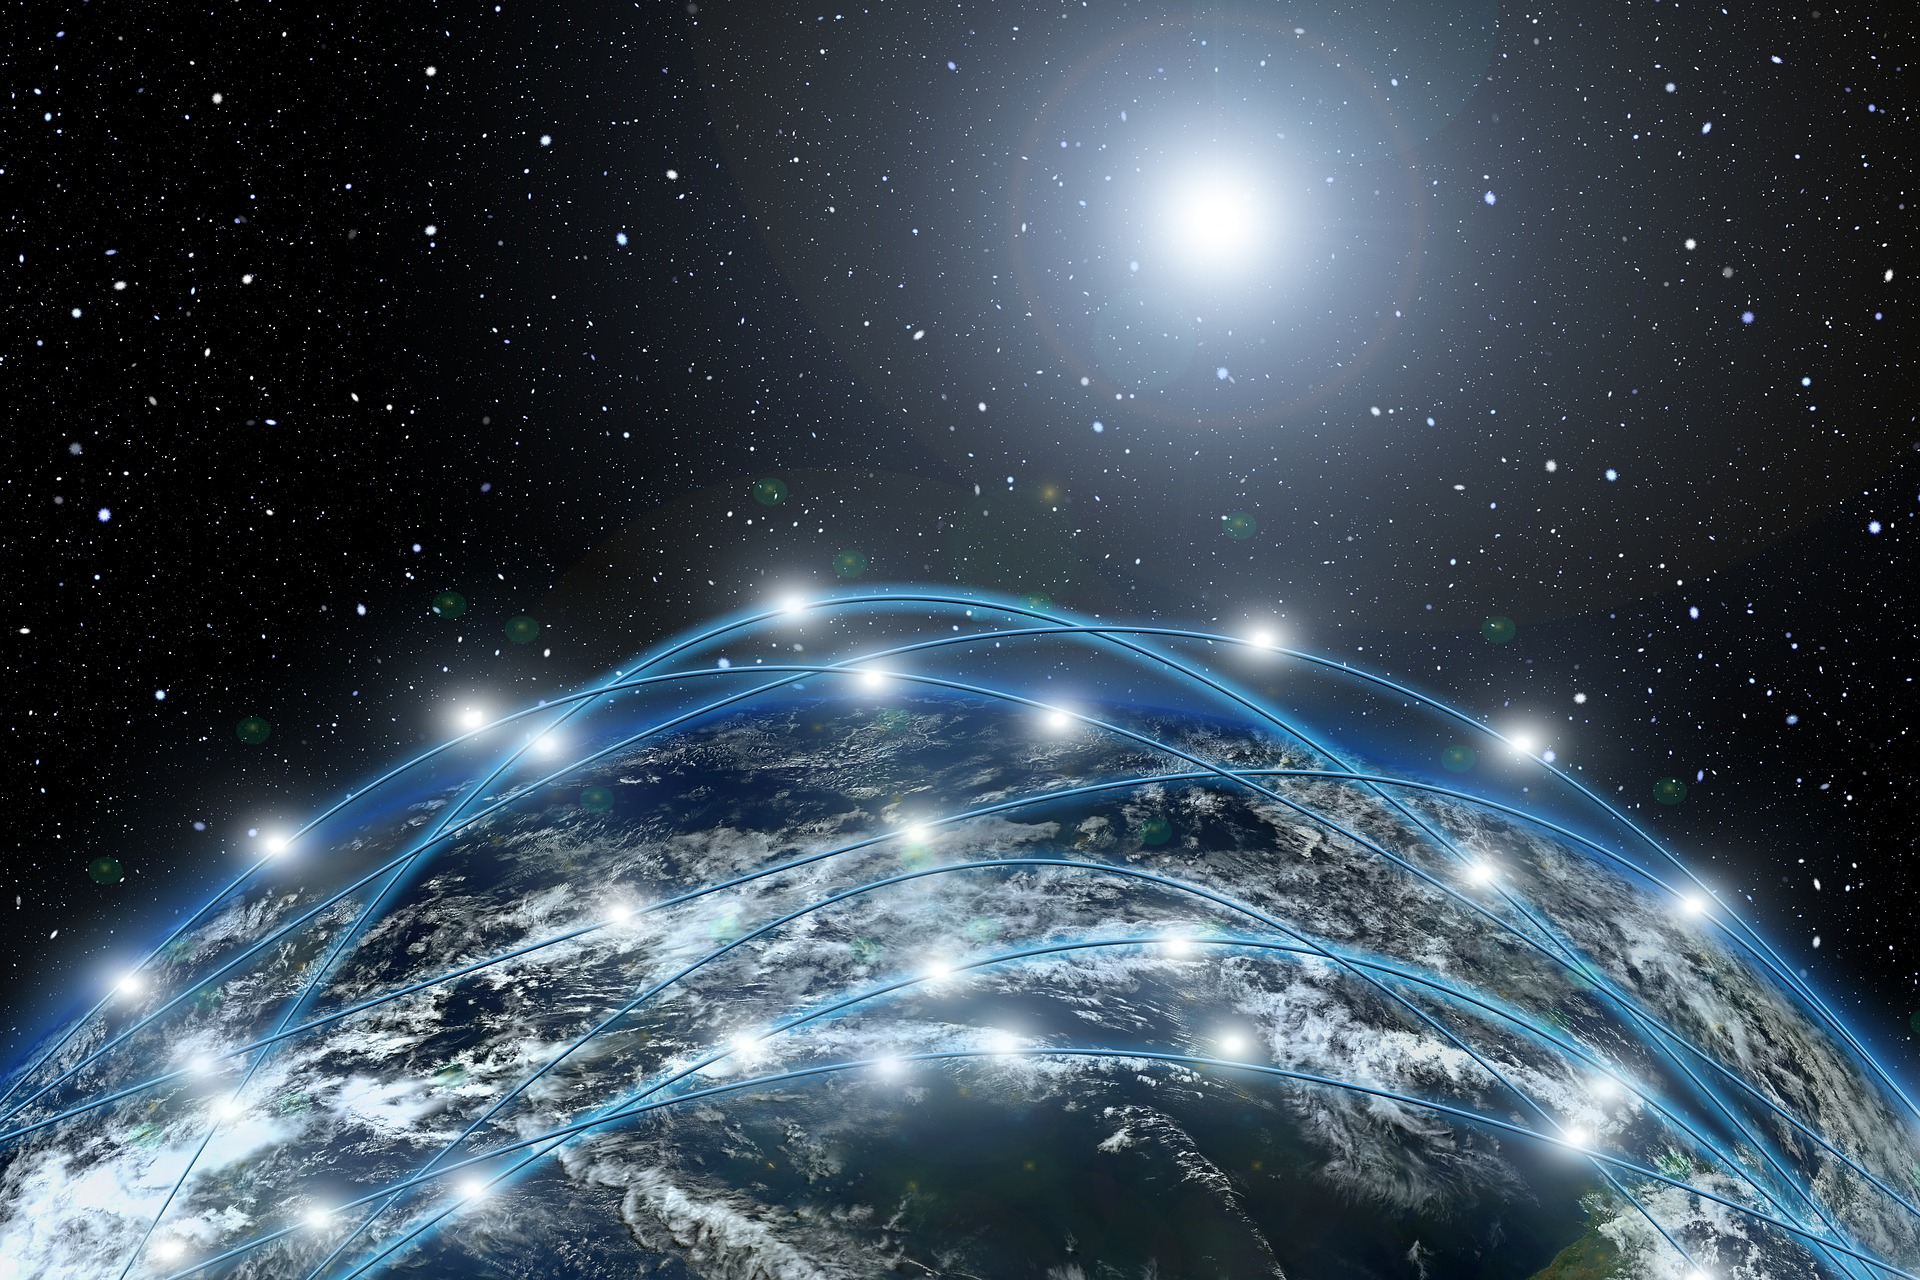 A network over the earth by geralt on Pixabay